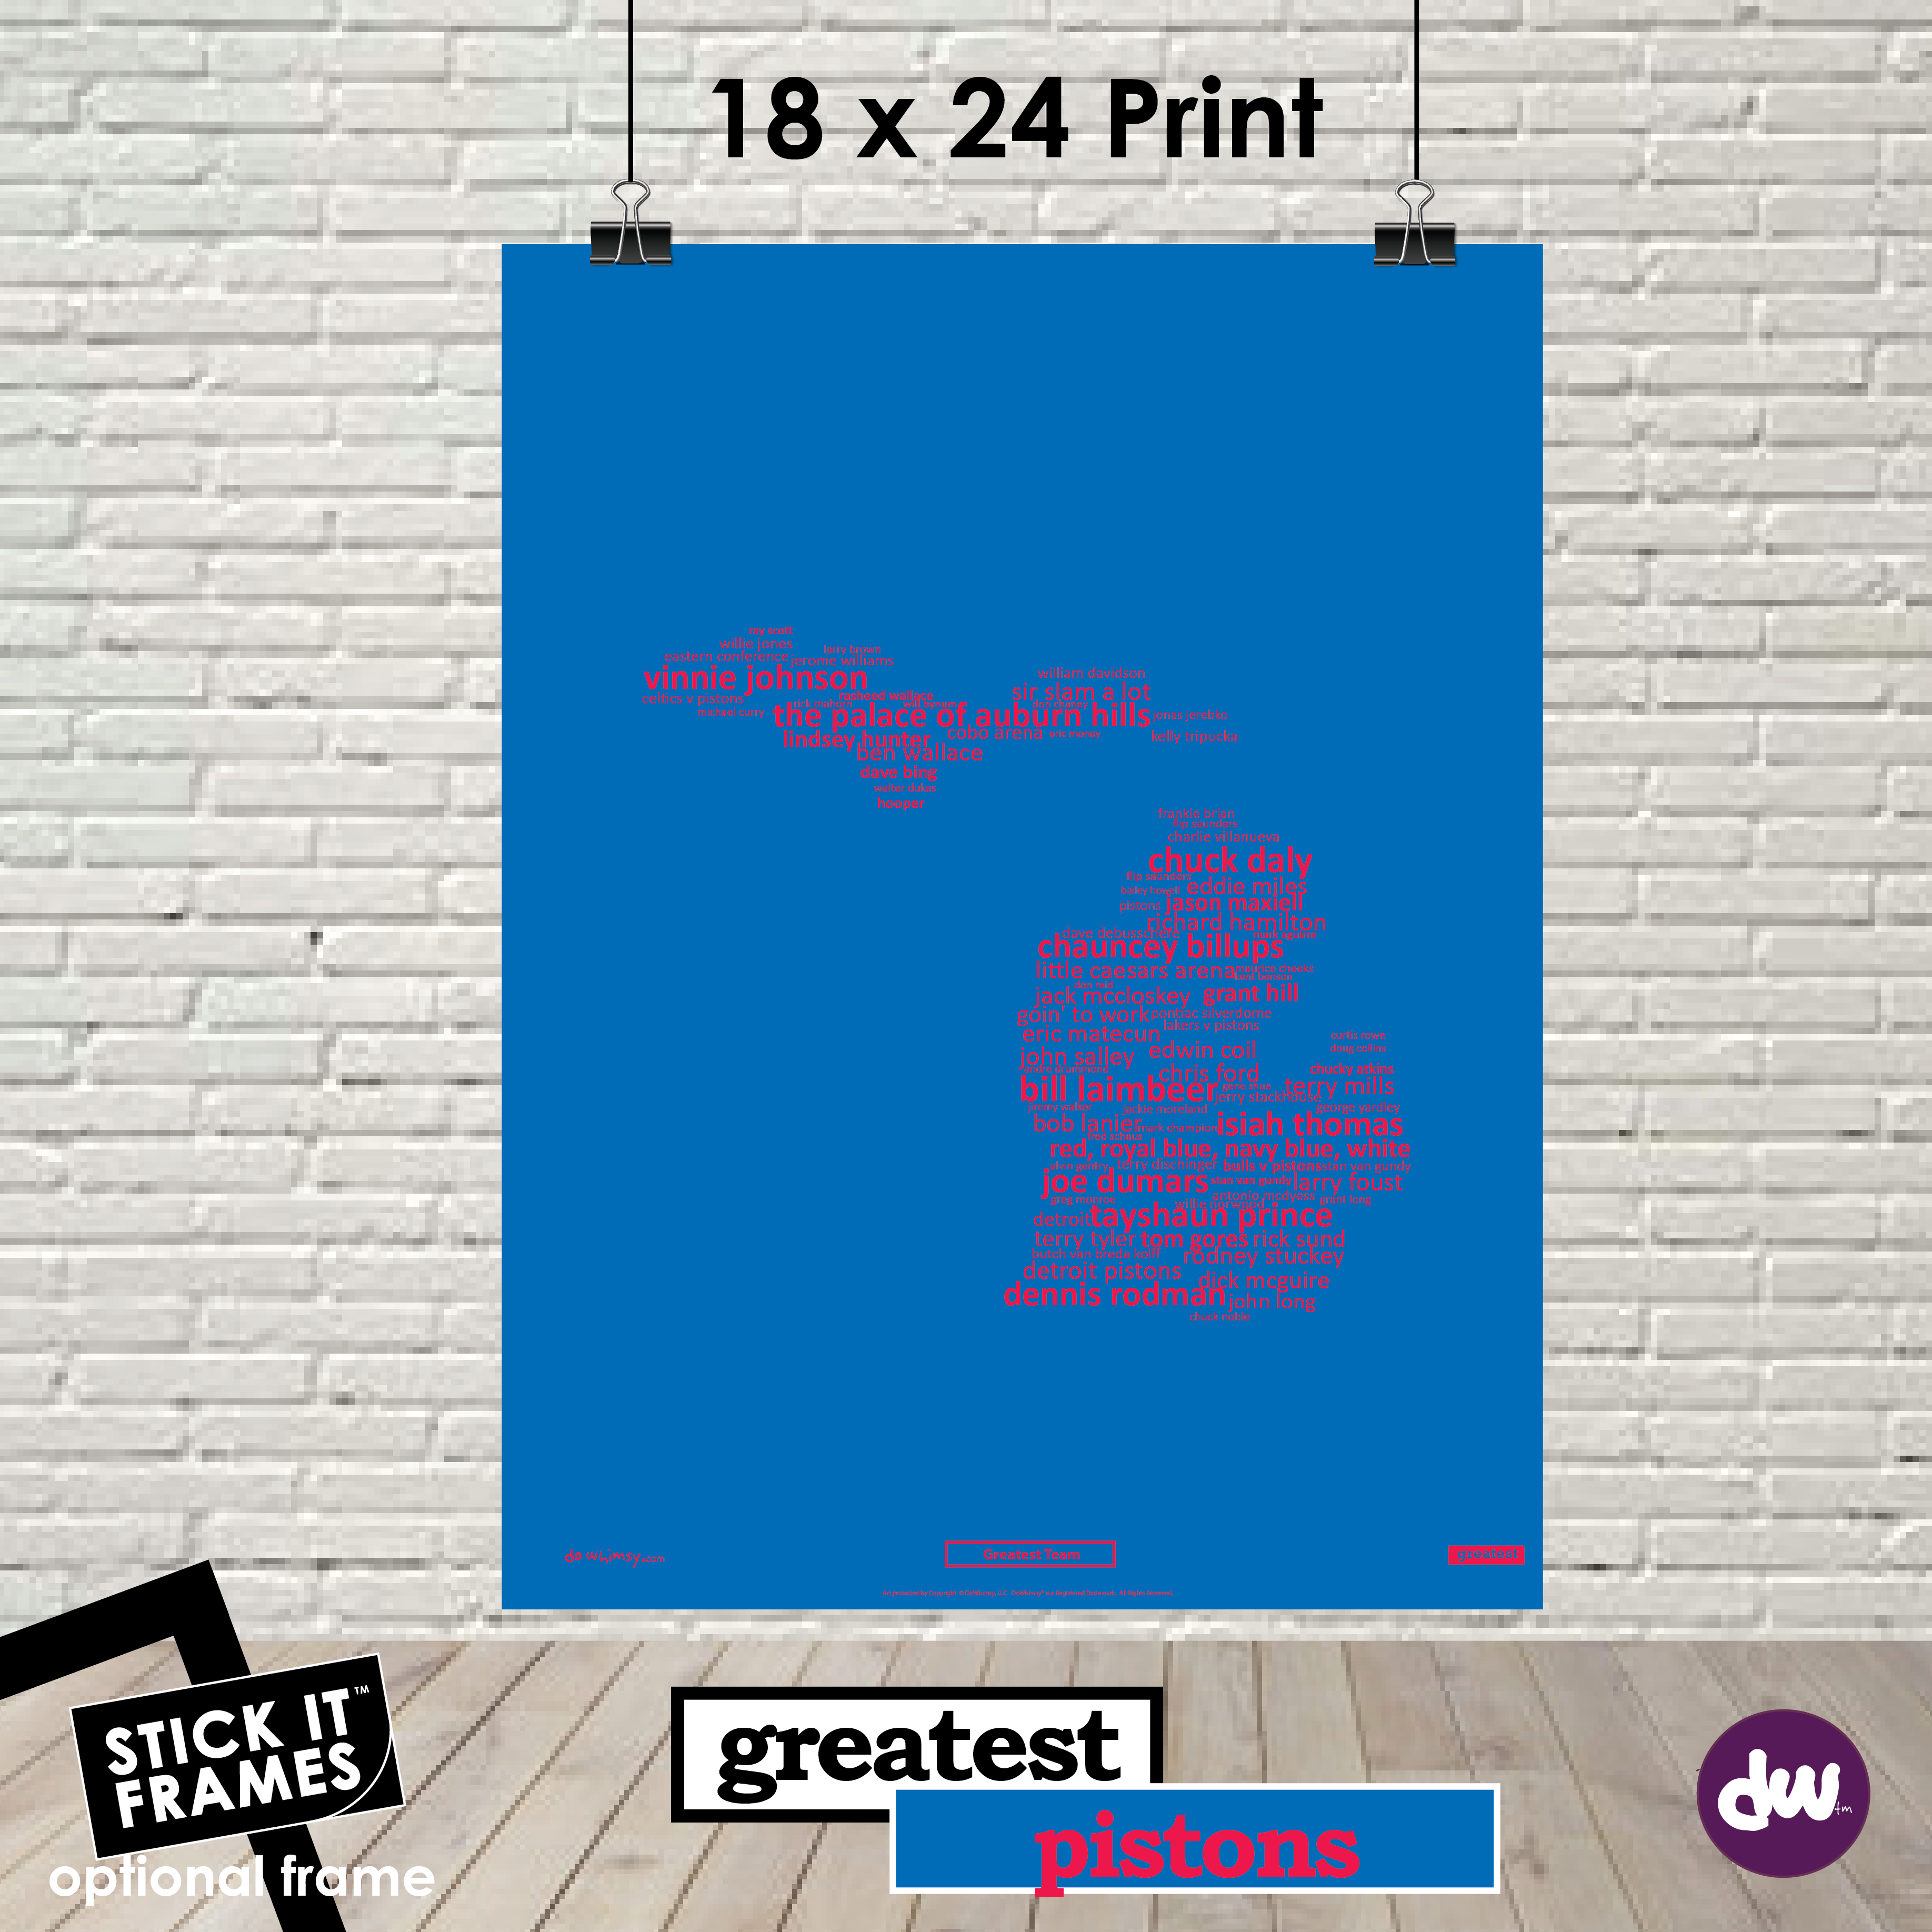 Greatest Michigan (Pistons) - All Products (Shirt, Art, Frames (R))